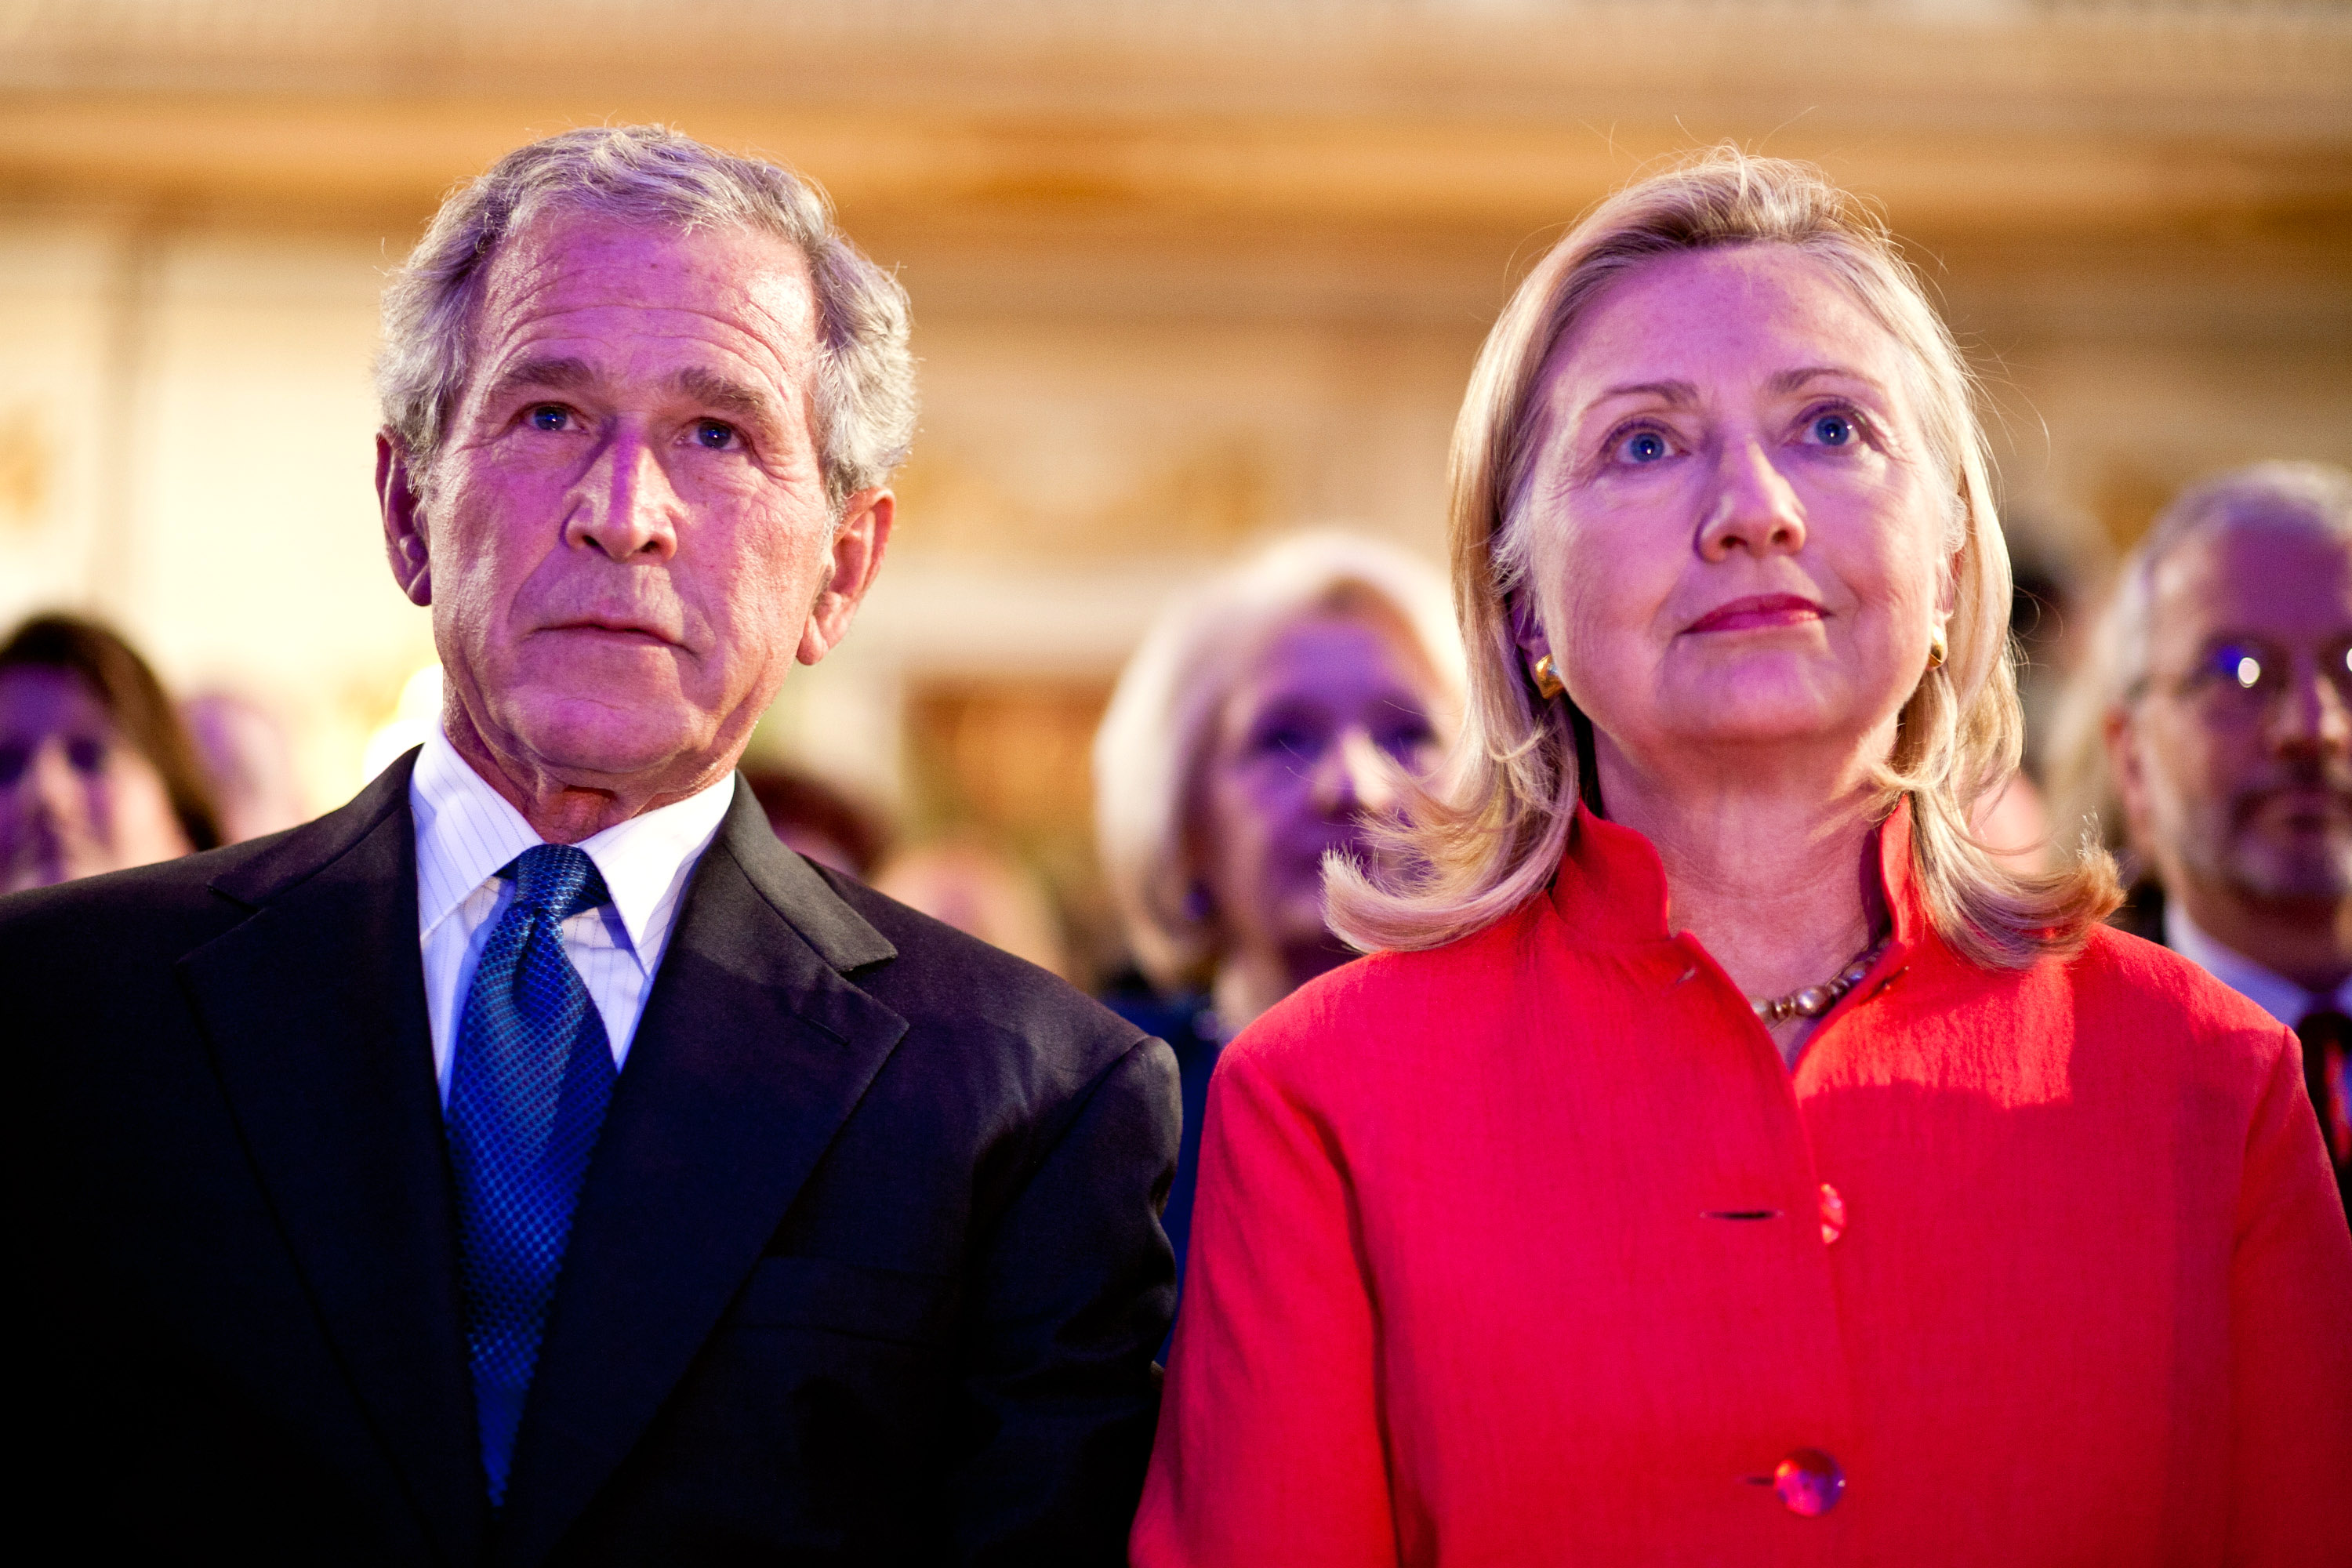 Hillary Clinton And Former President Bush Introduce Cancer Screening Initiative For Females In Developing Nations